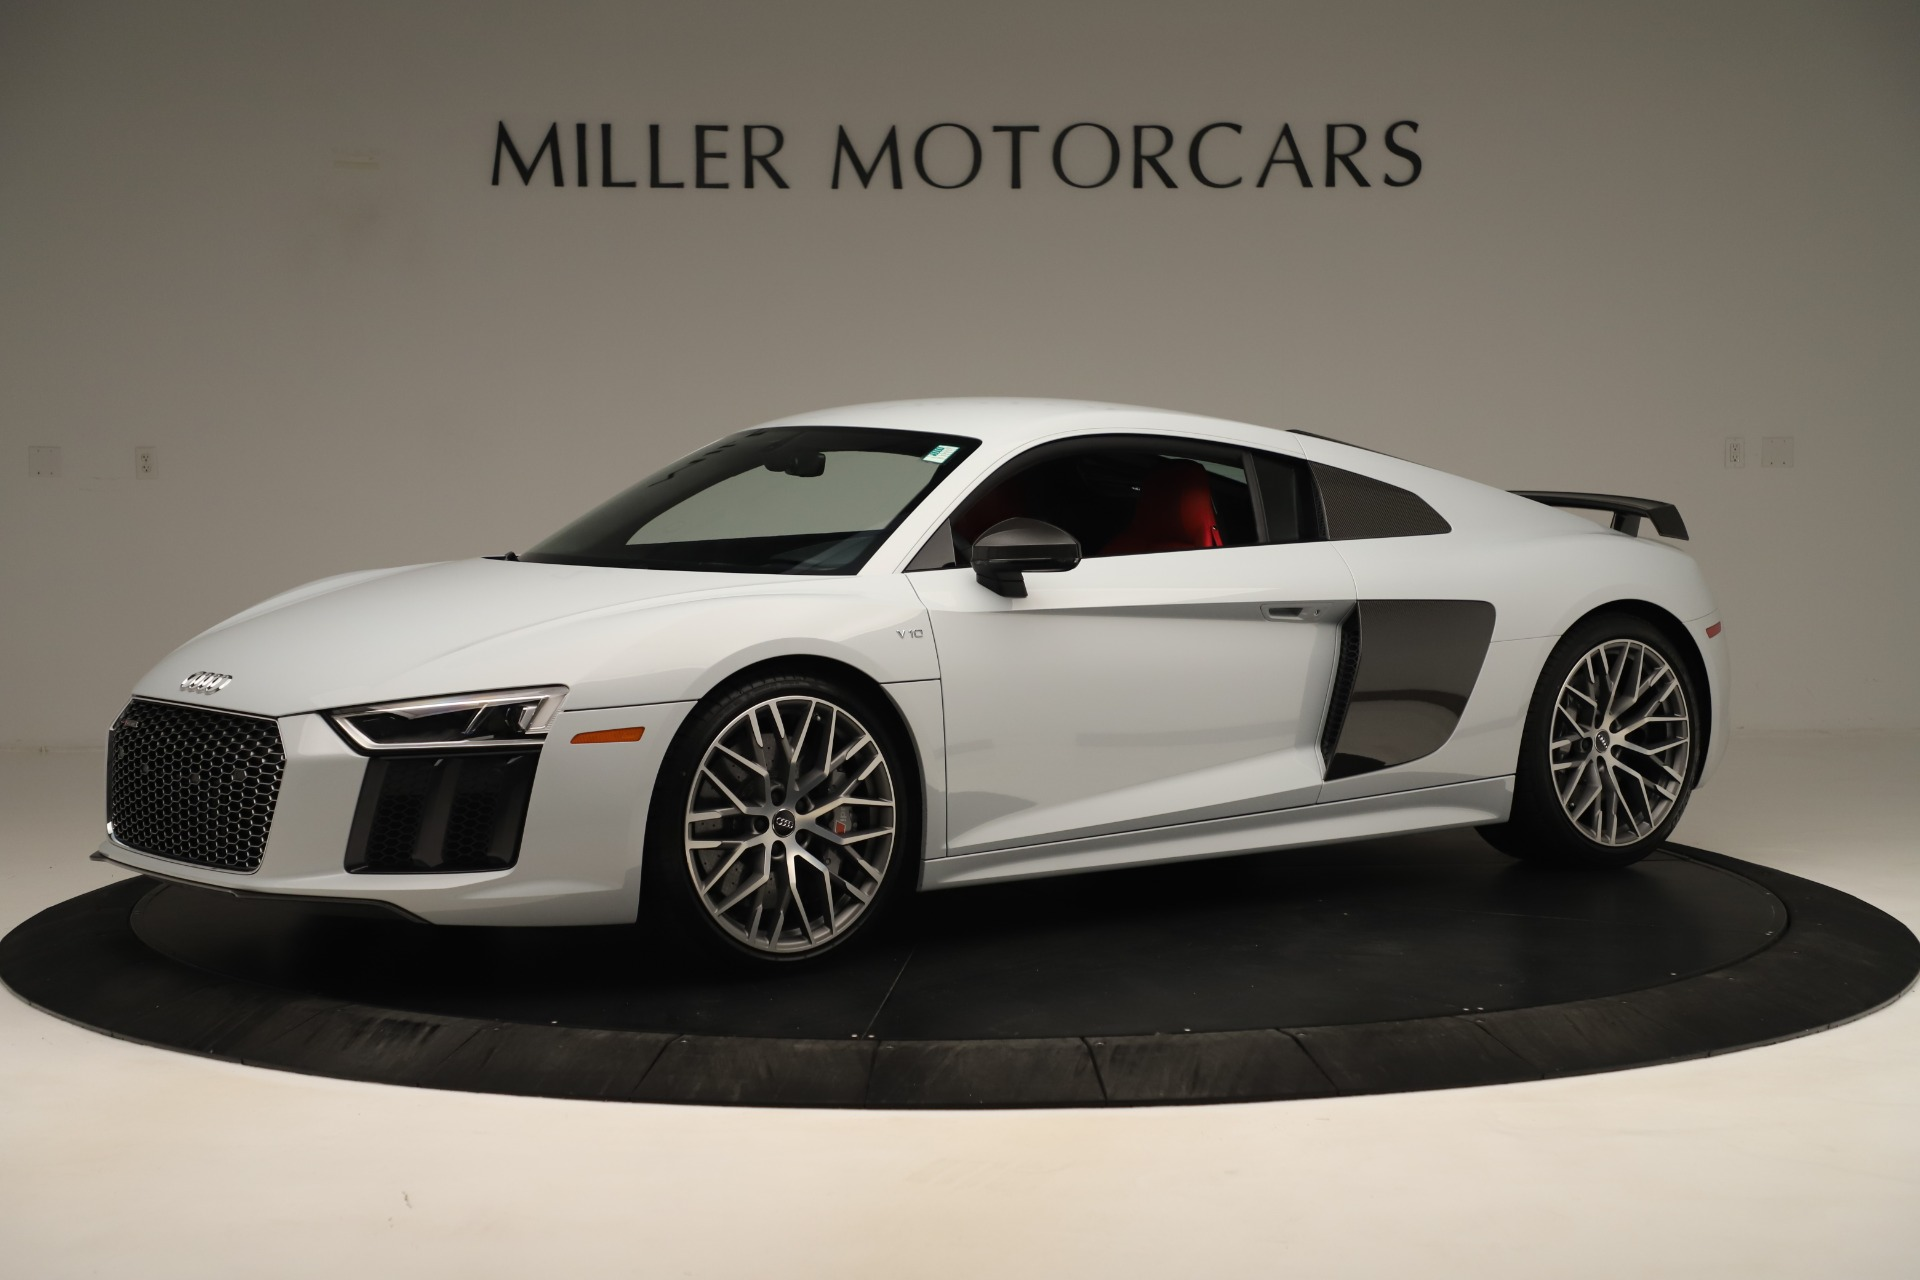 Used 2018 Audi R8 5.2 quattro V10 Plus For Sale In Westport, CT 3360_p2